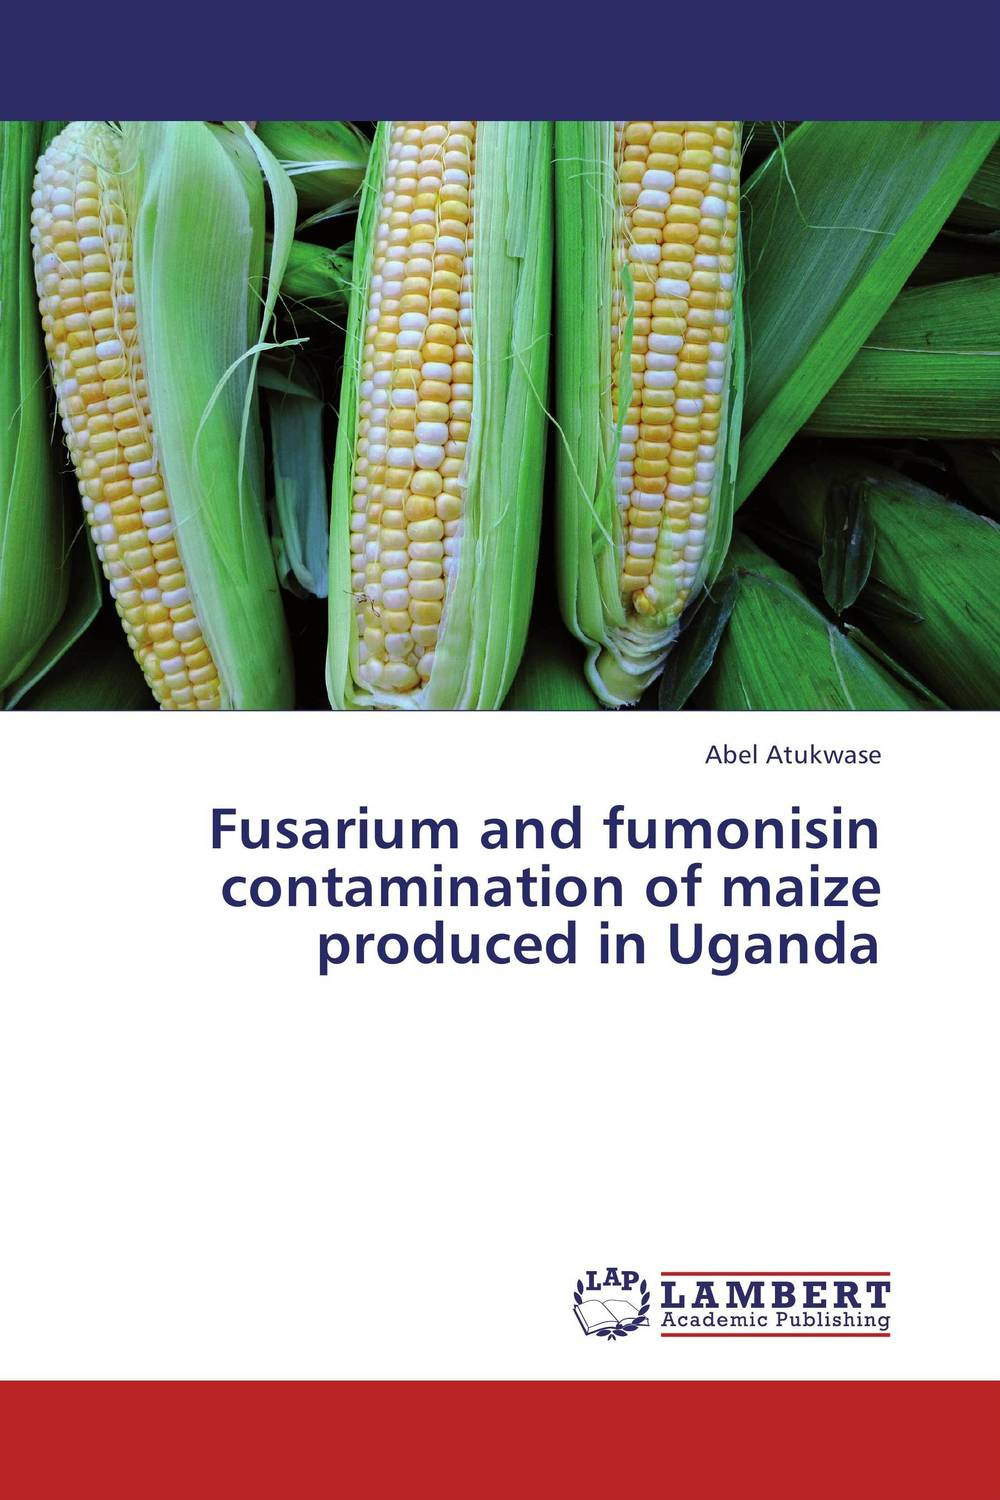 Fusarium and fumonisin contamination of maize produced in Uganda